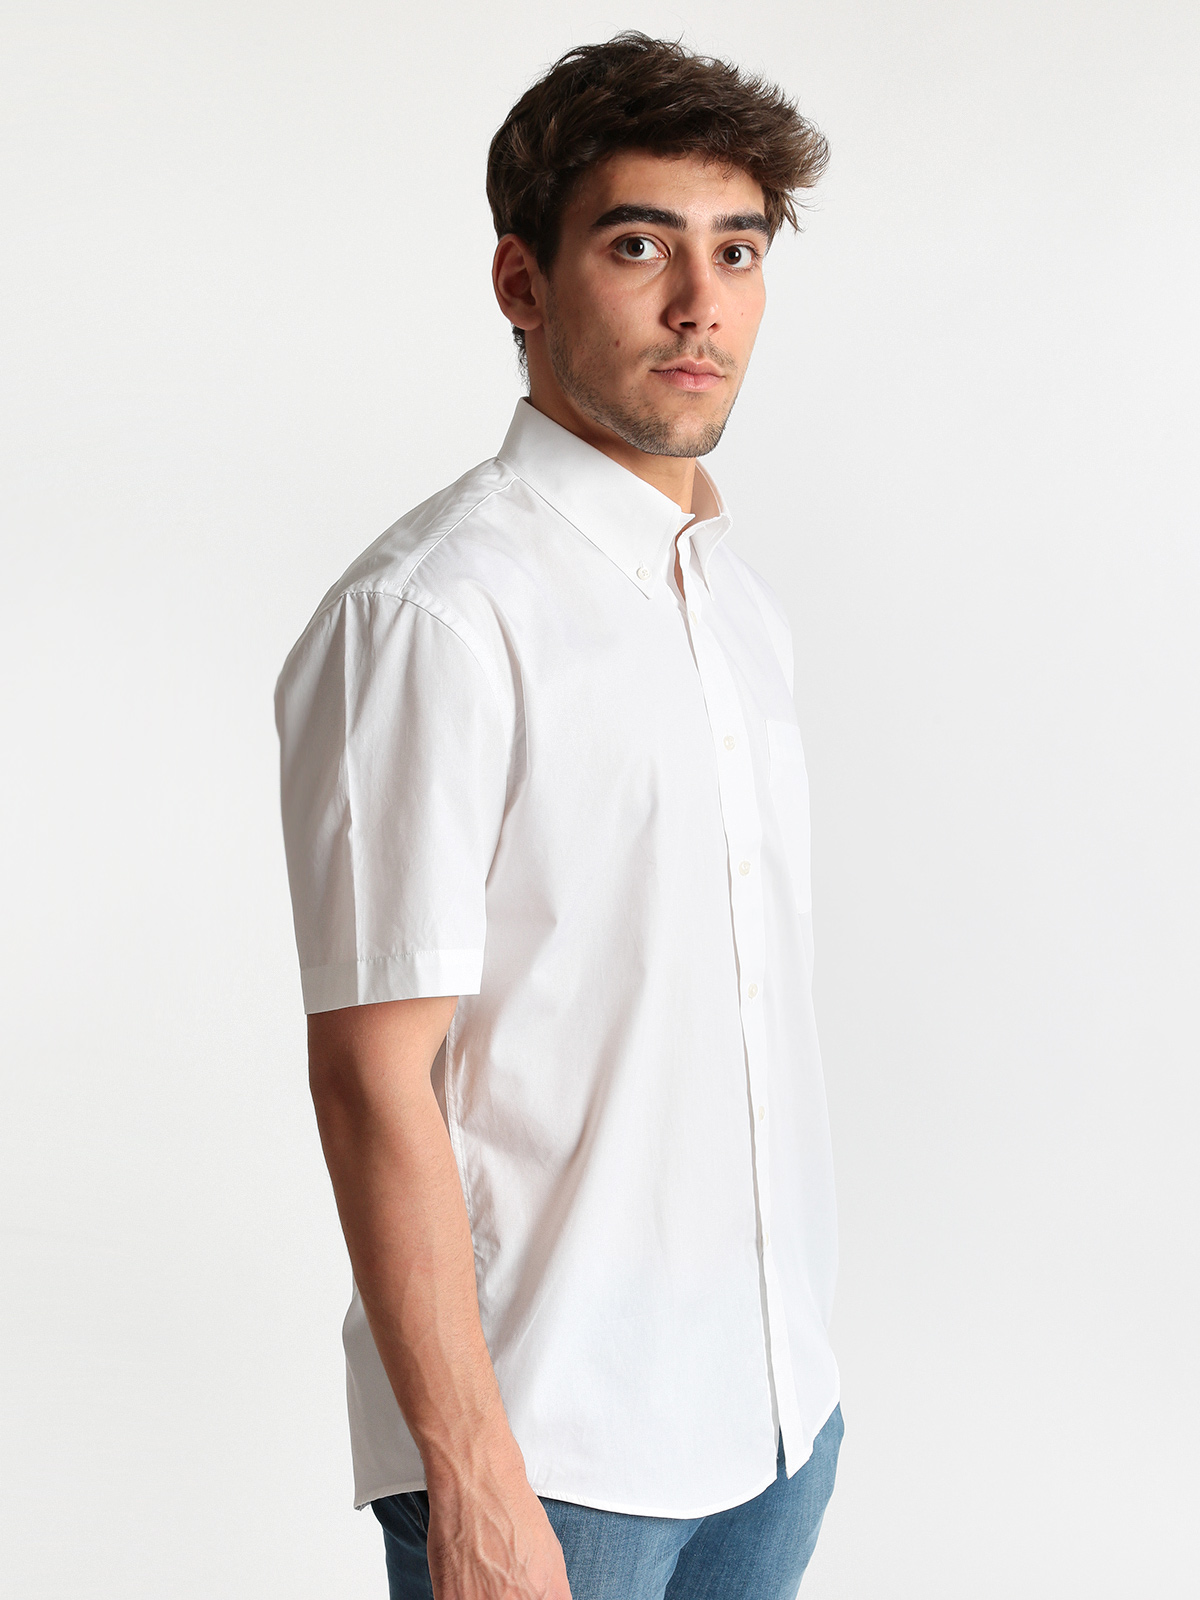 White Short-sleeved Shirt Cotton